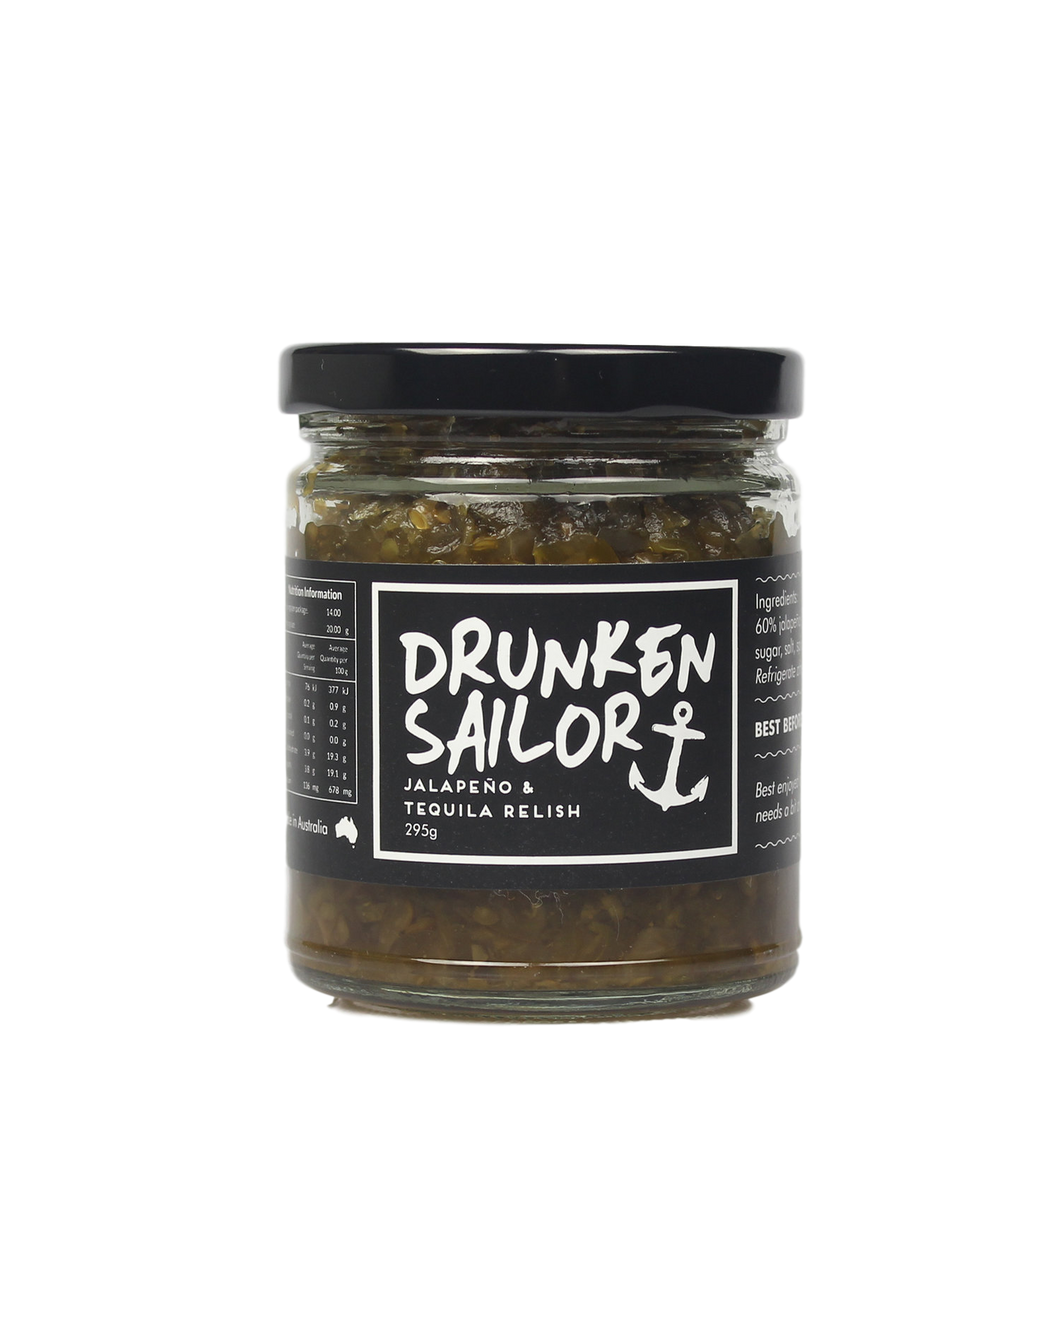 Jalapeño and Tequila Relish Relish 295g by Drunken Sailor